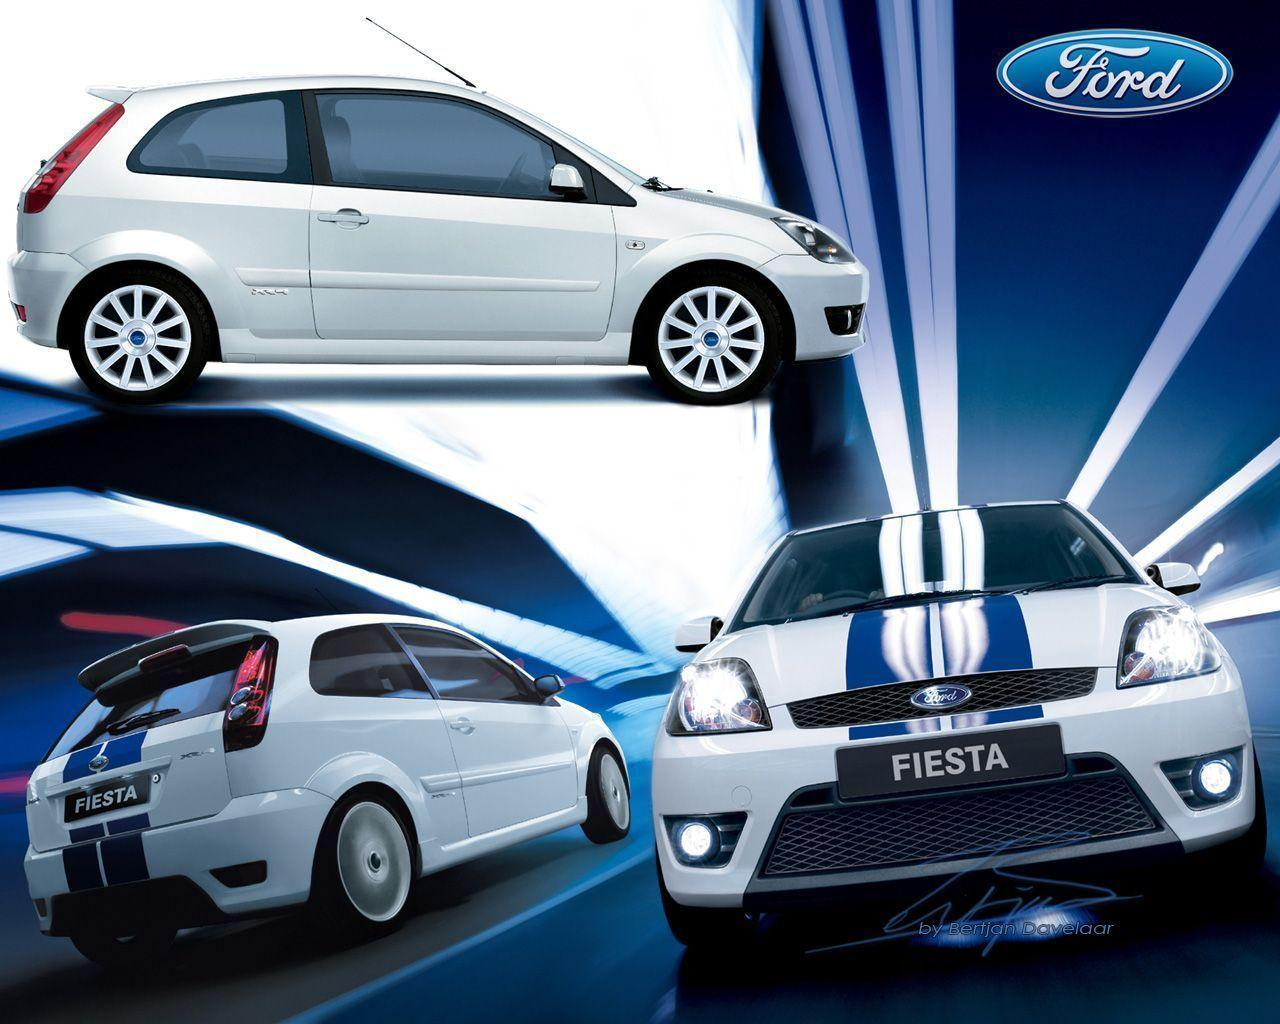 Ford Fiesta Wallpapers - Wallpaper Cave